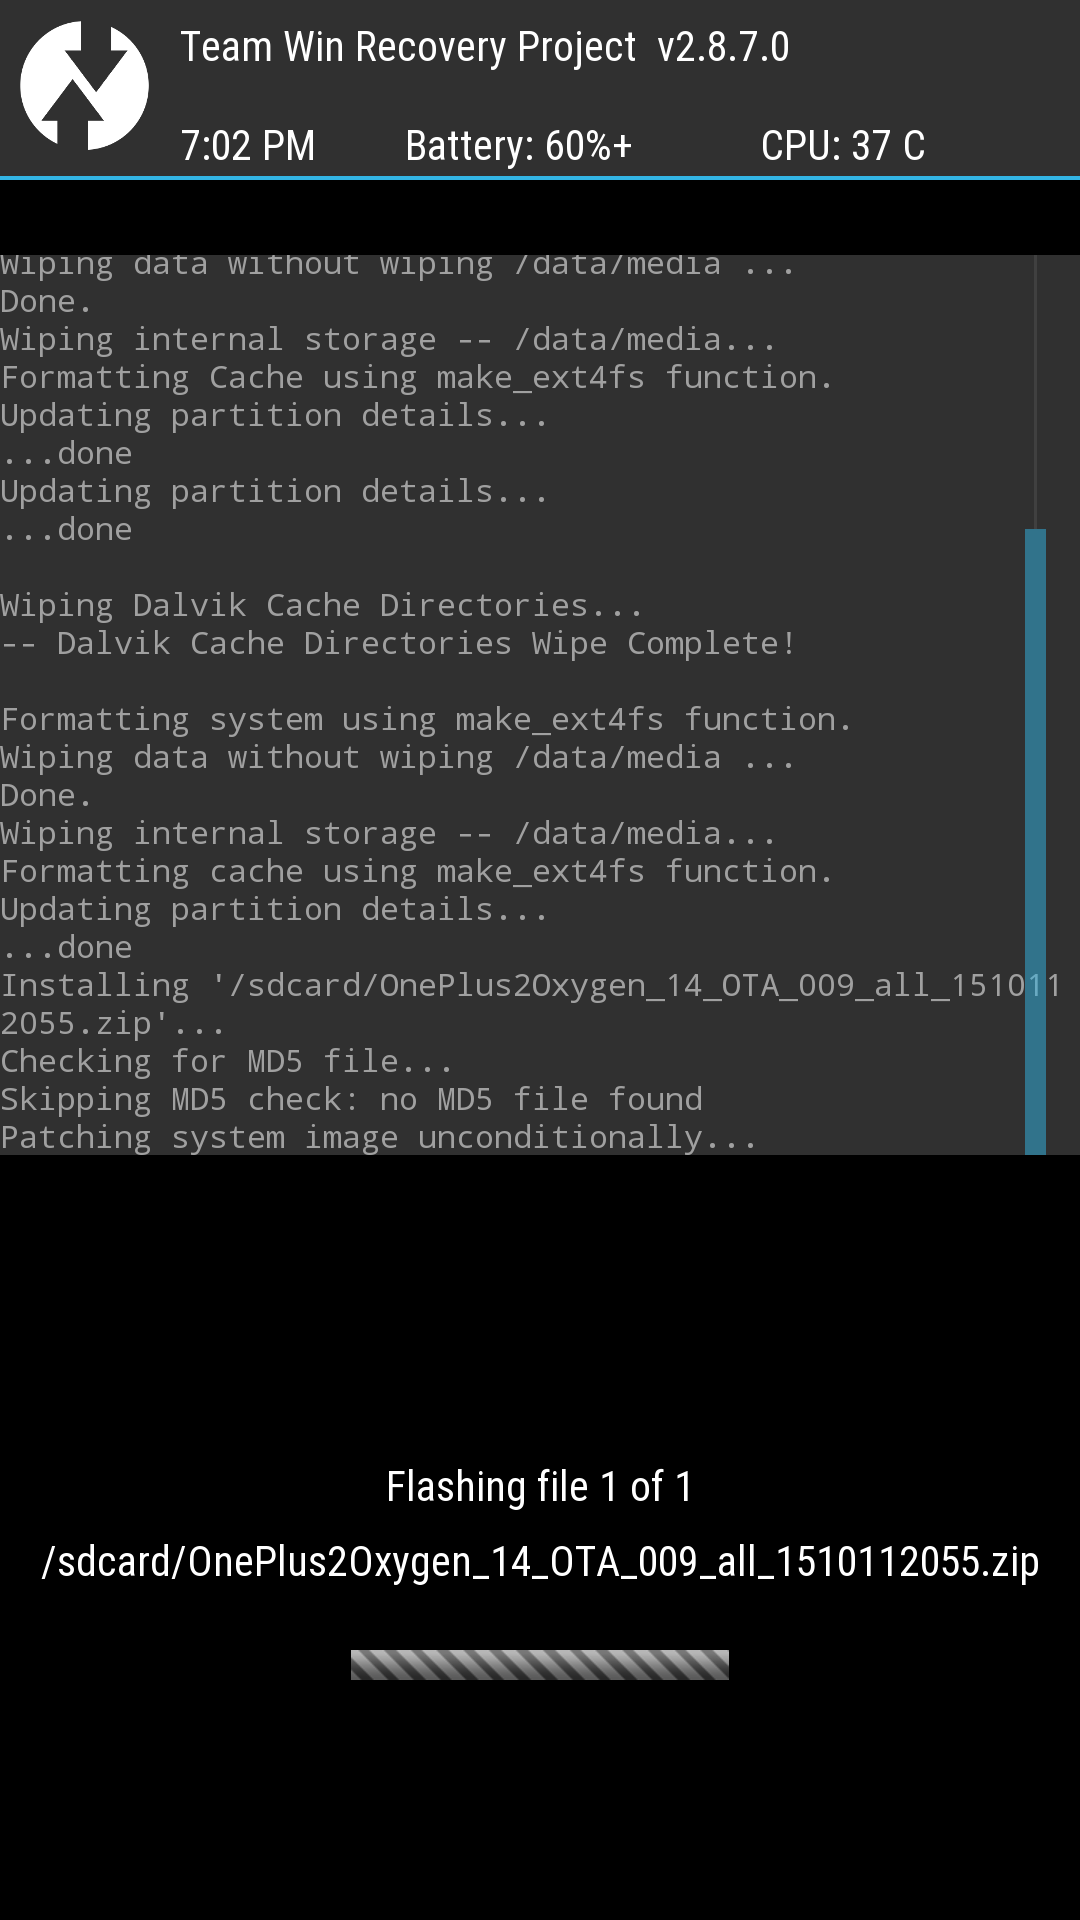 No md5 file found problem - OnePlus Community